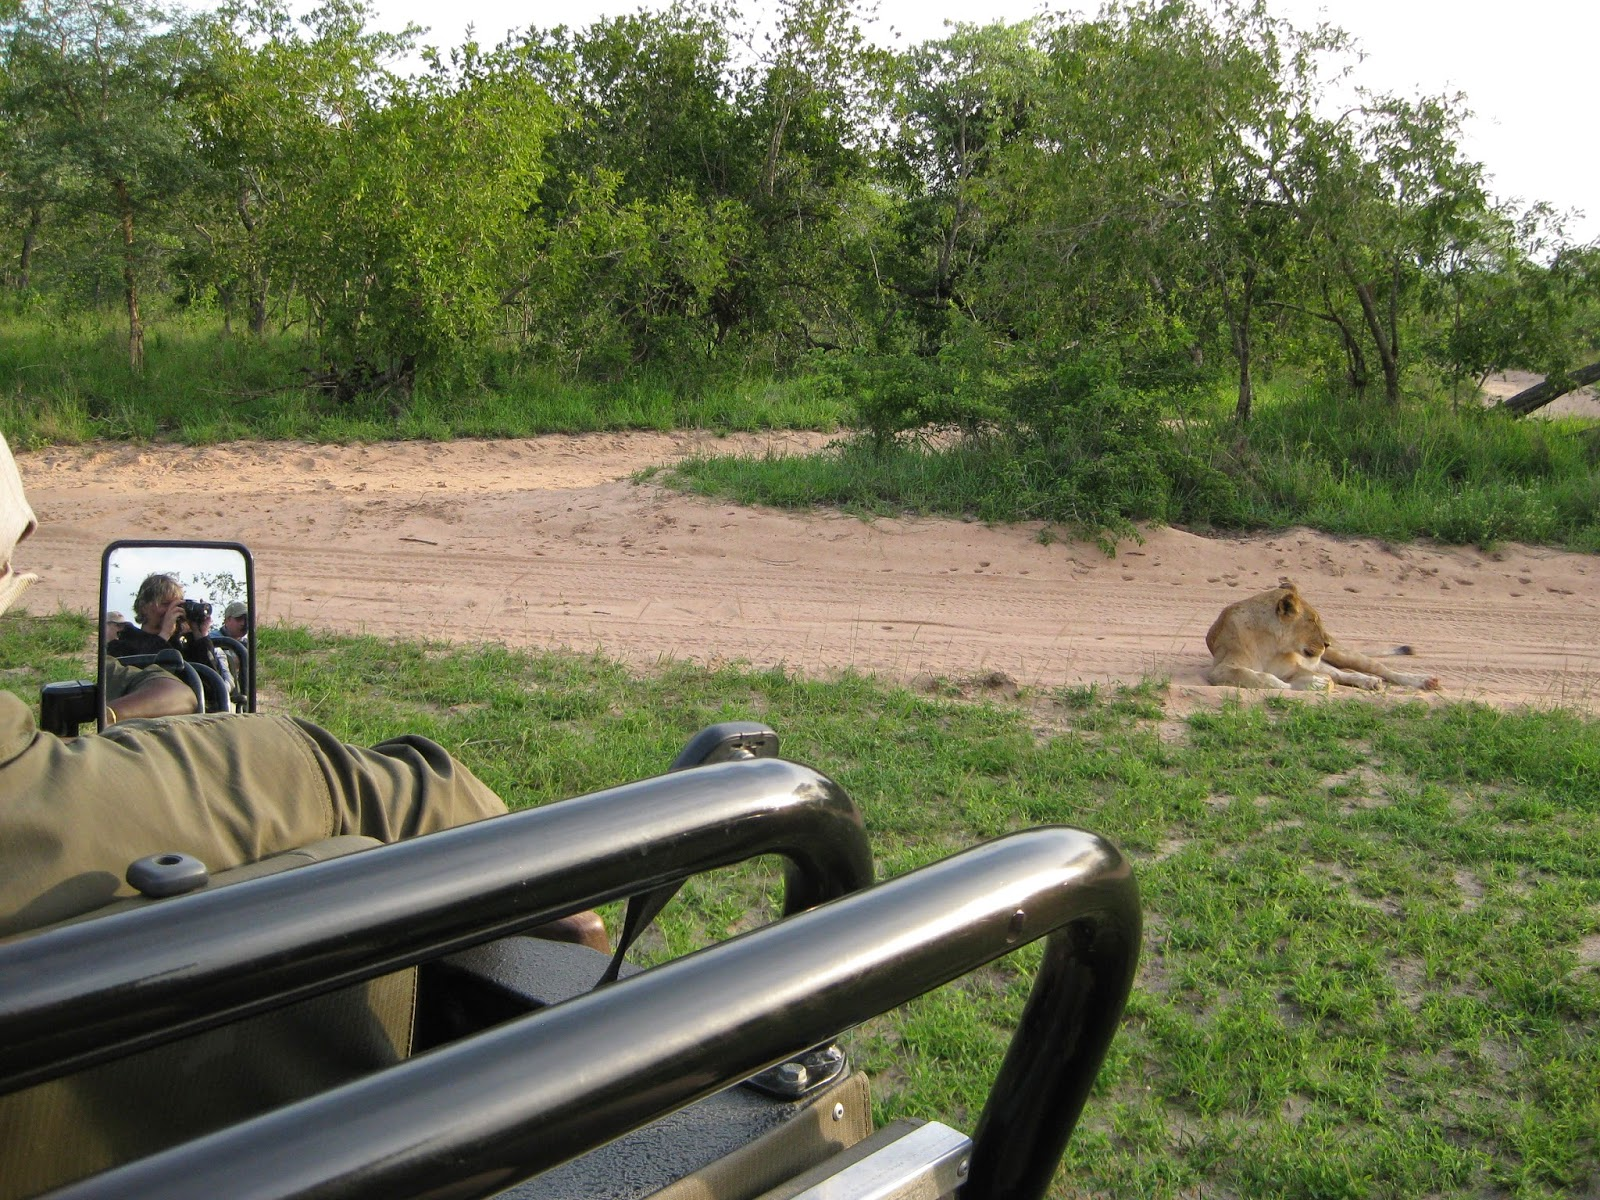 Sabi Sands - This is how close we can get to the animals